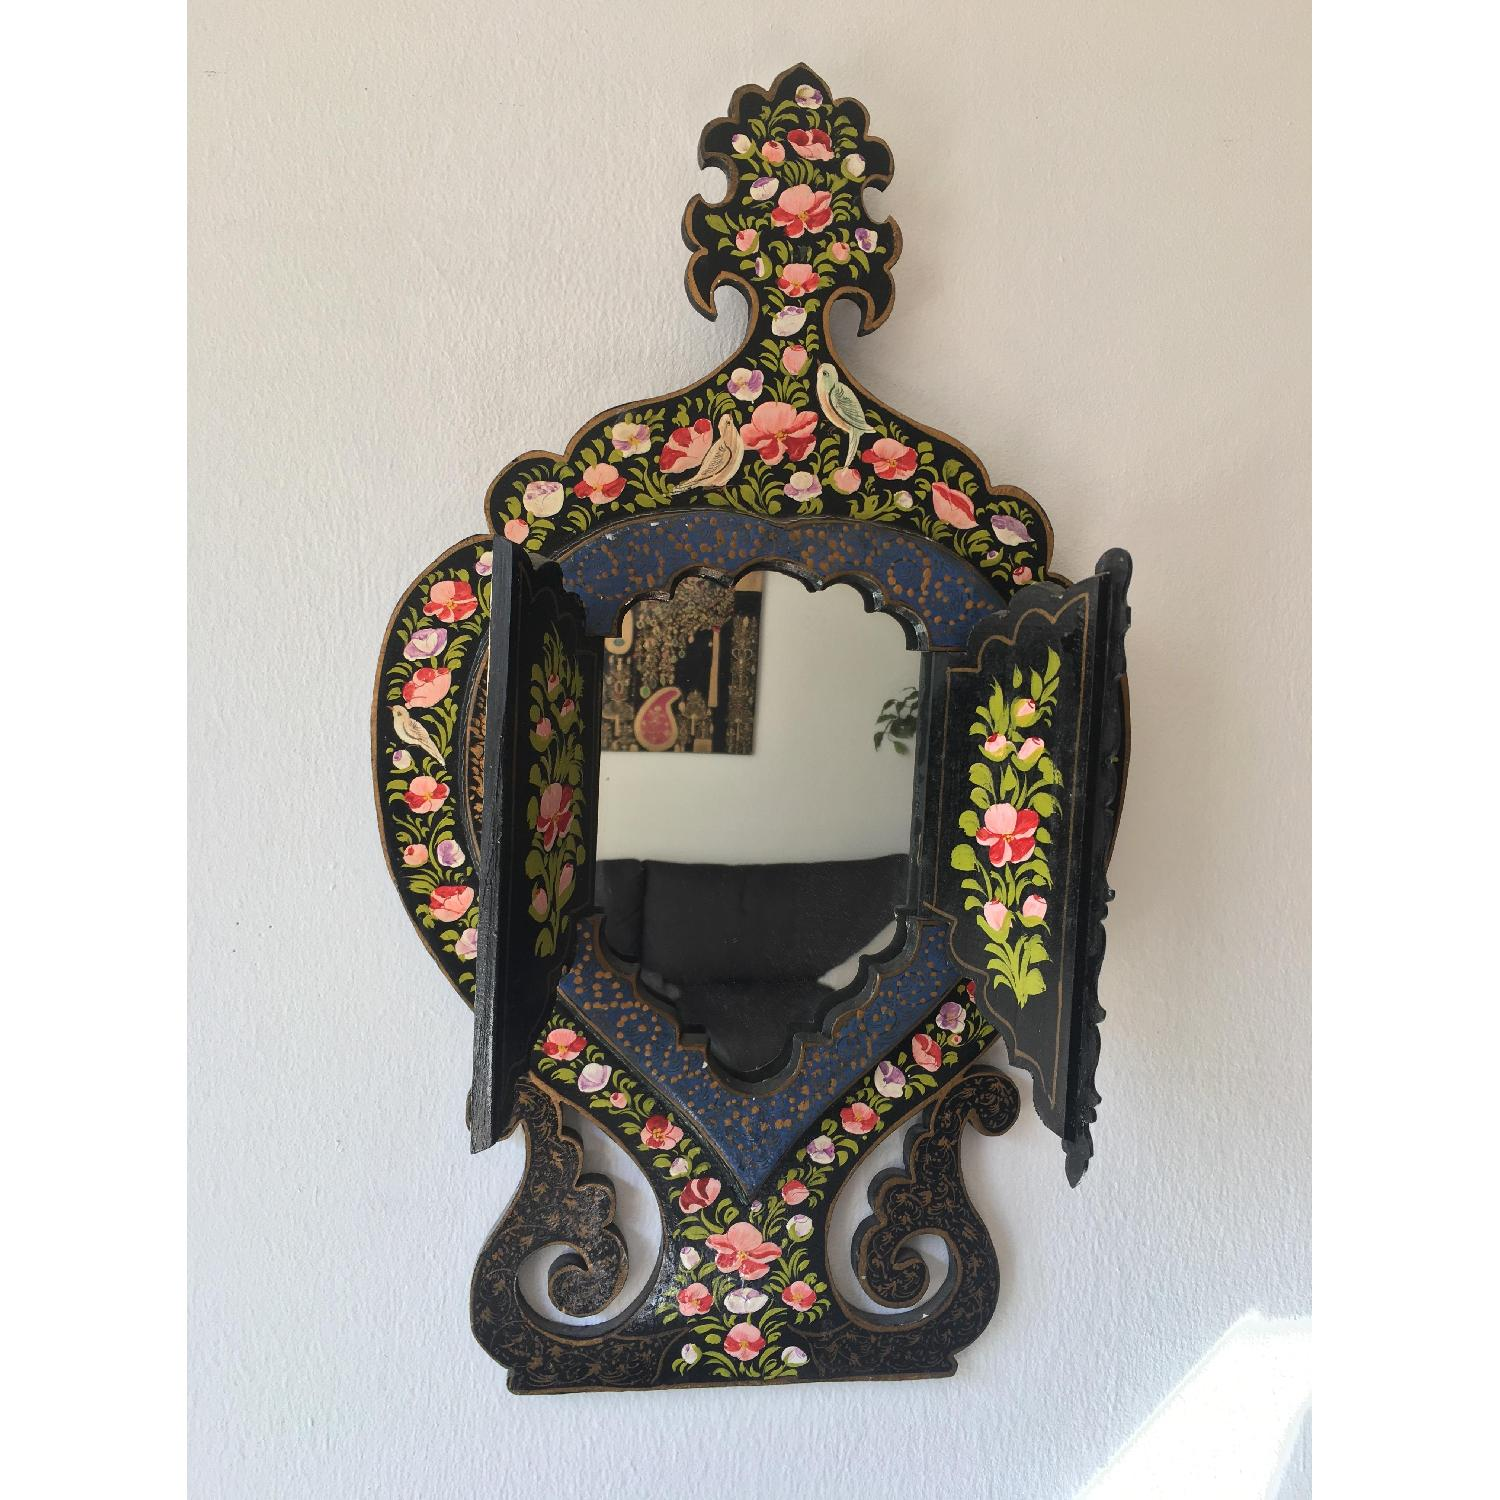 Antique Small Hand Painted Wooden Persian Mirror Frame - image-7